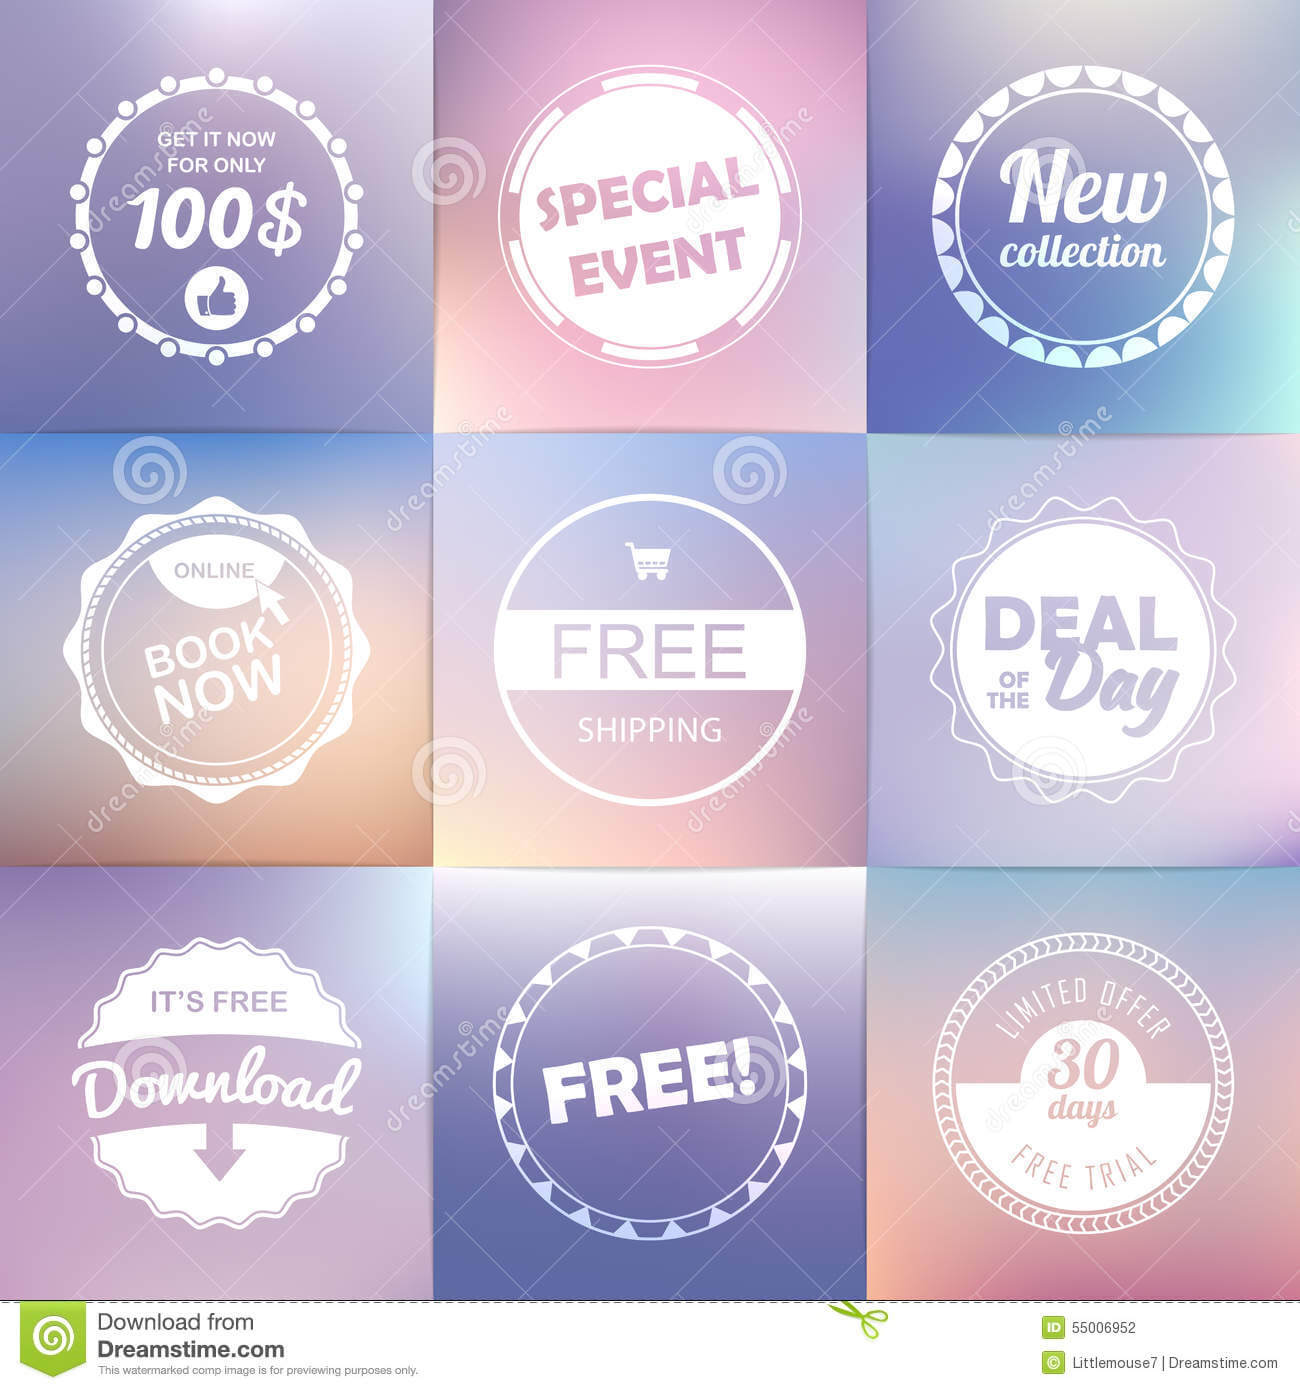 Vintage Labels Set: Free Shipping ,free, Download, New With Book Label Template Free